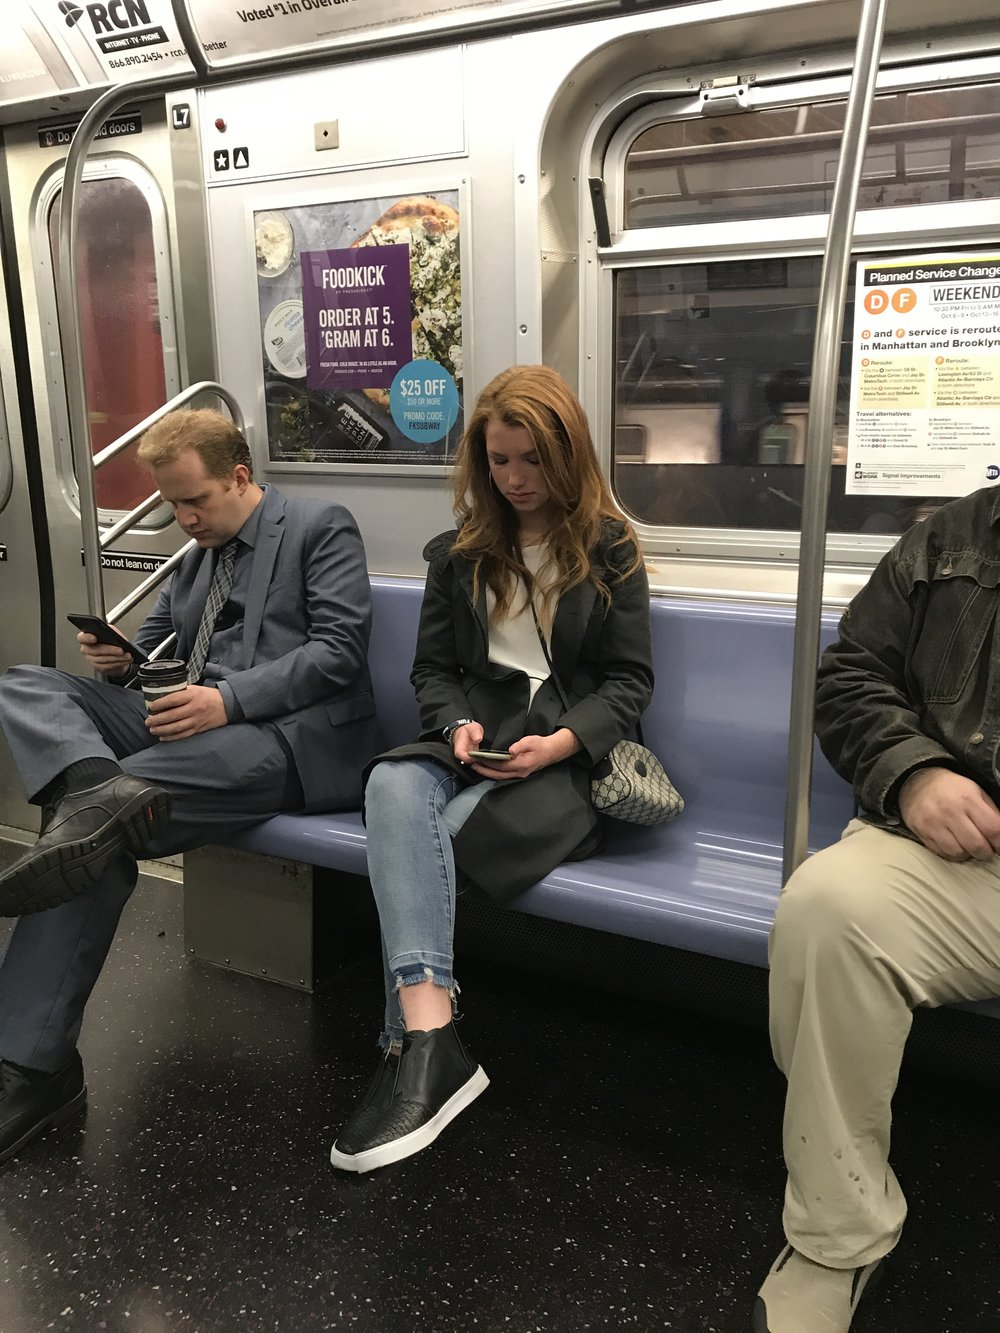 Starting the next day on the subway on the way to Parsons ... obviously not a morning person!!!